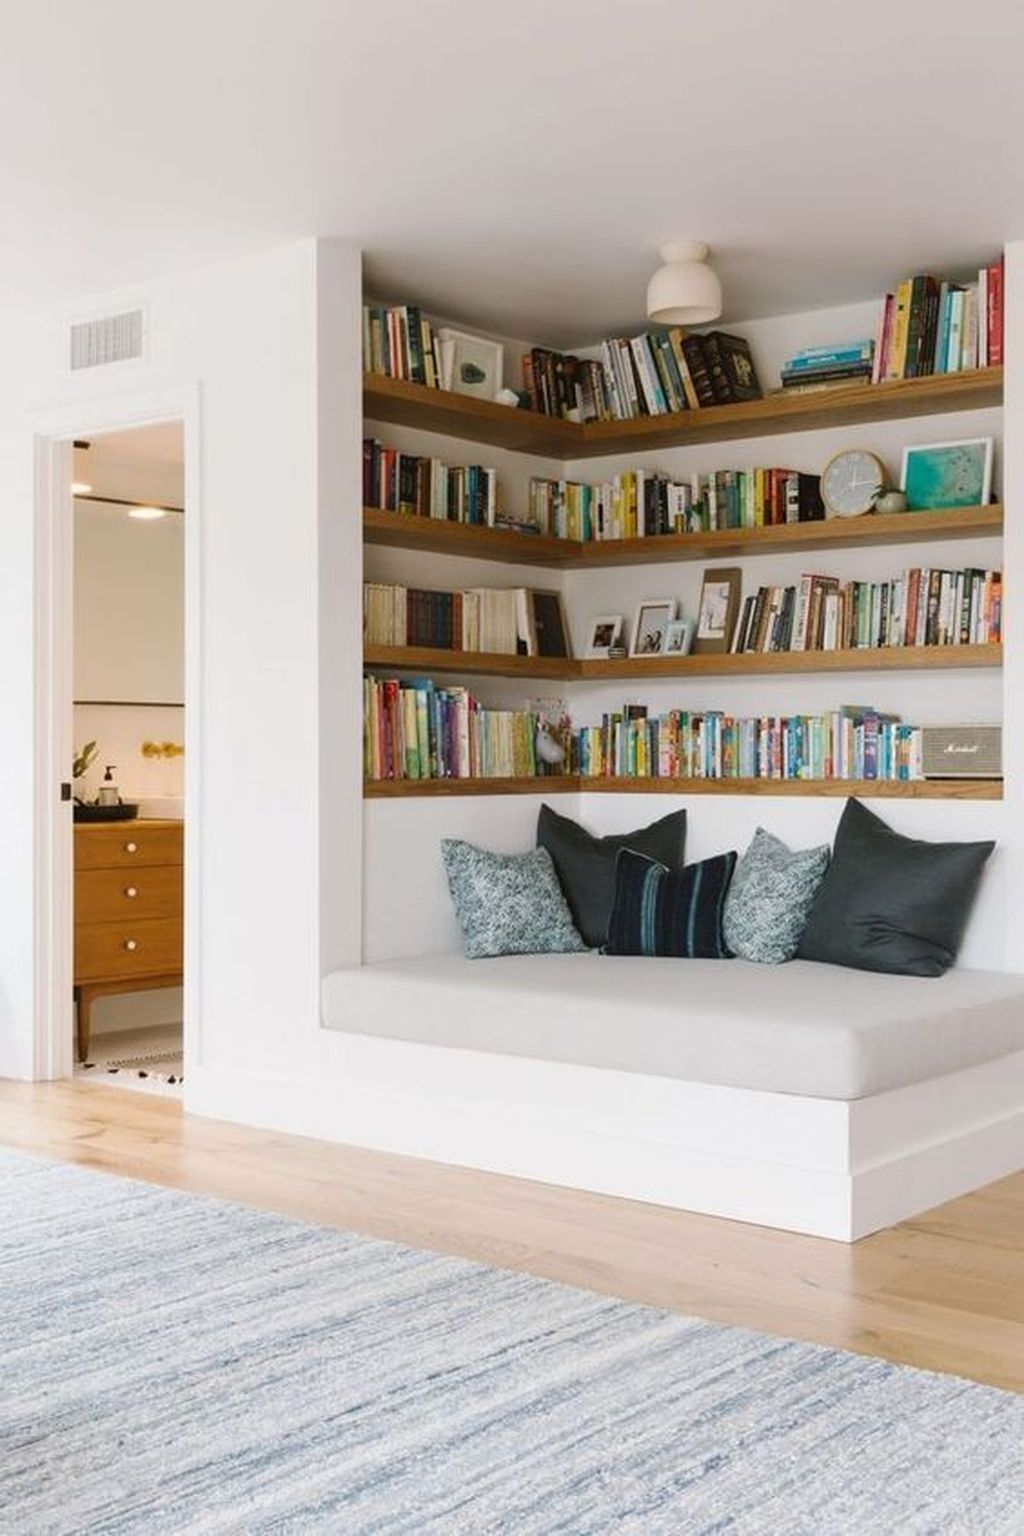 40 Adorable Home Interior Design Ideas To Try Modern Bedroom